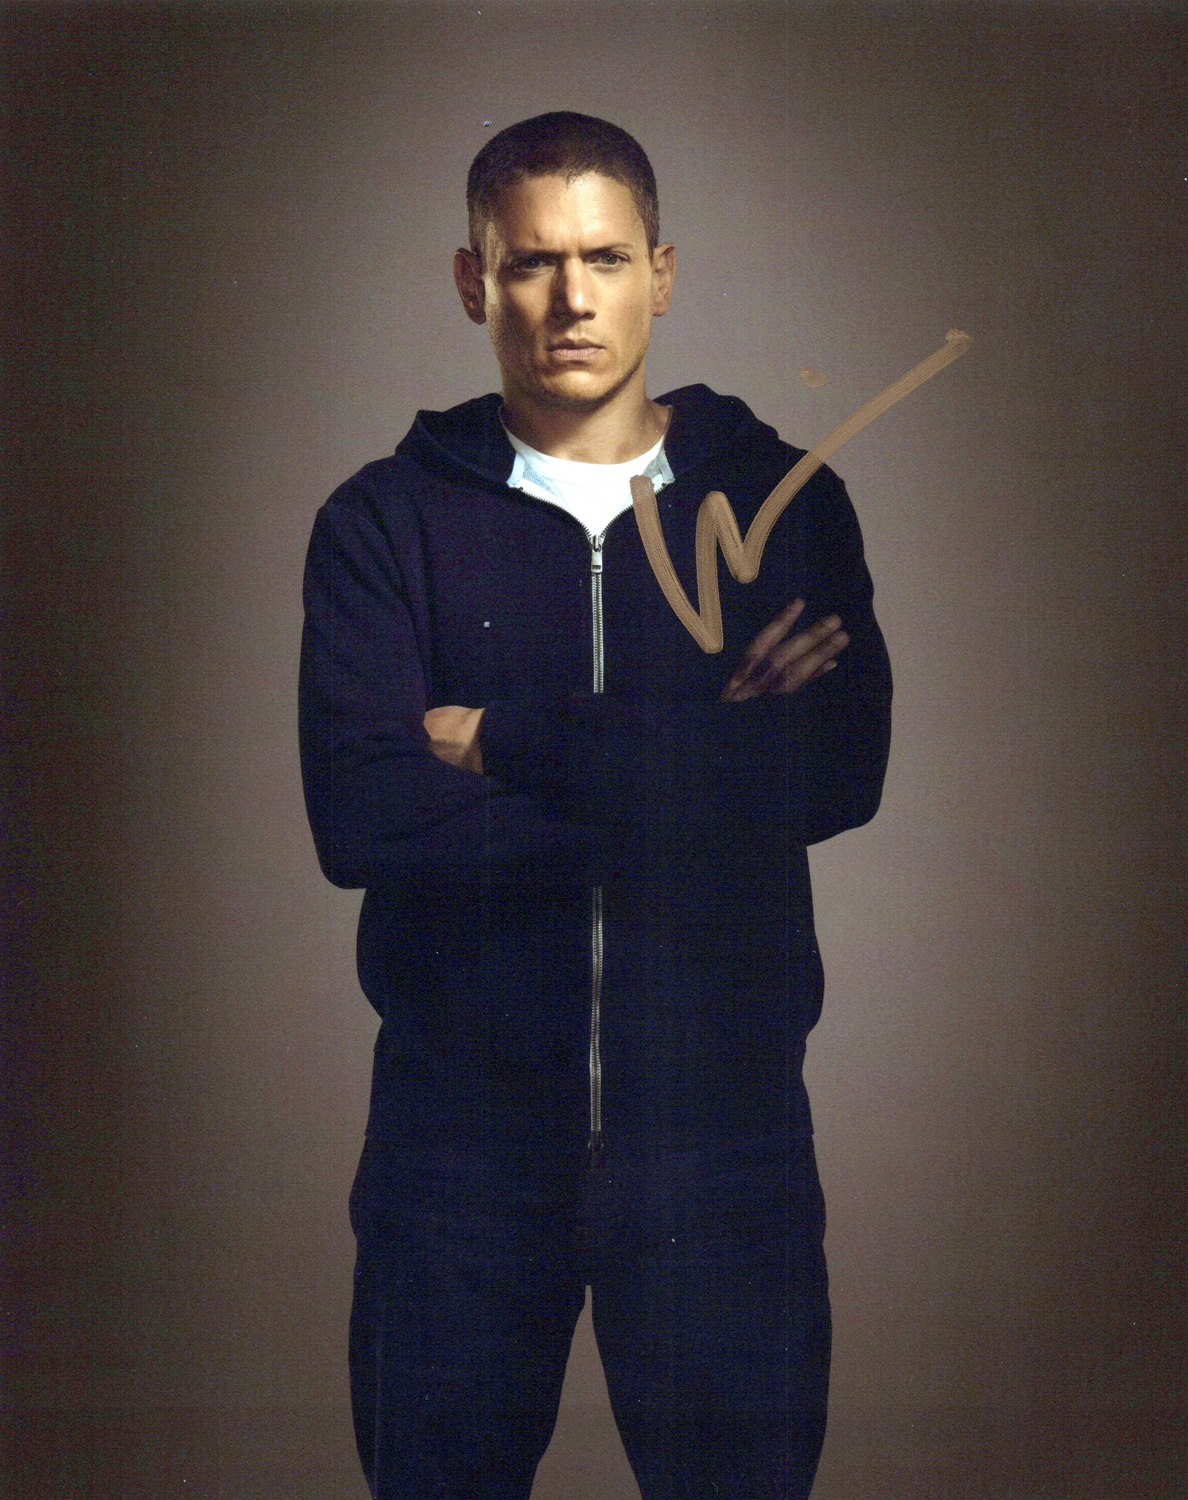 Wentworth Miller Original Autogramm auf Foto 20x25cm  - Prison Break